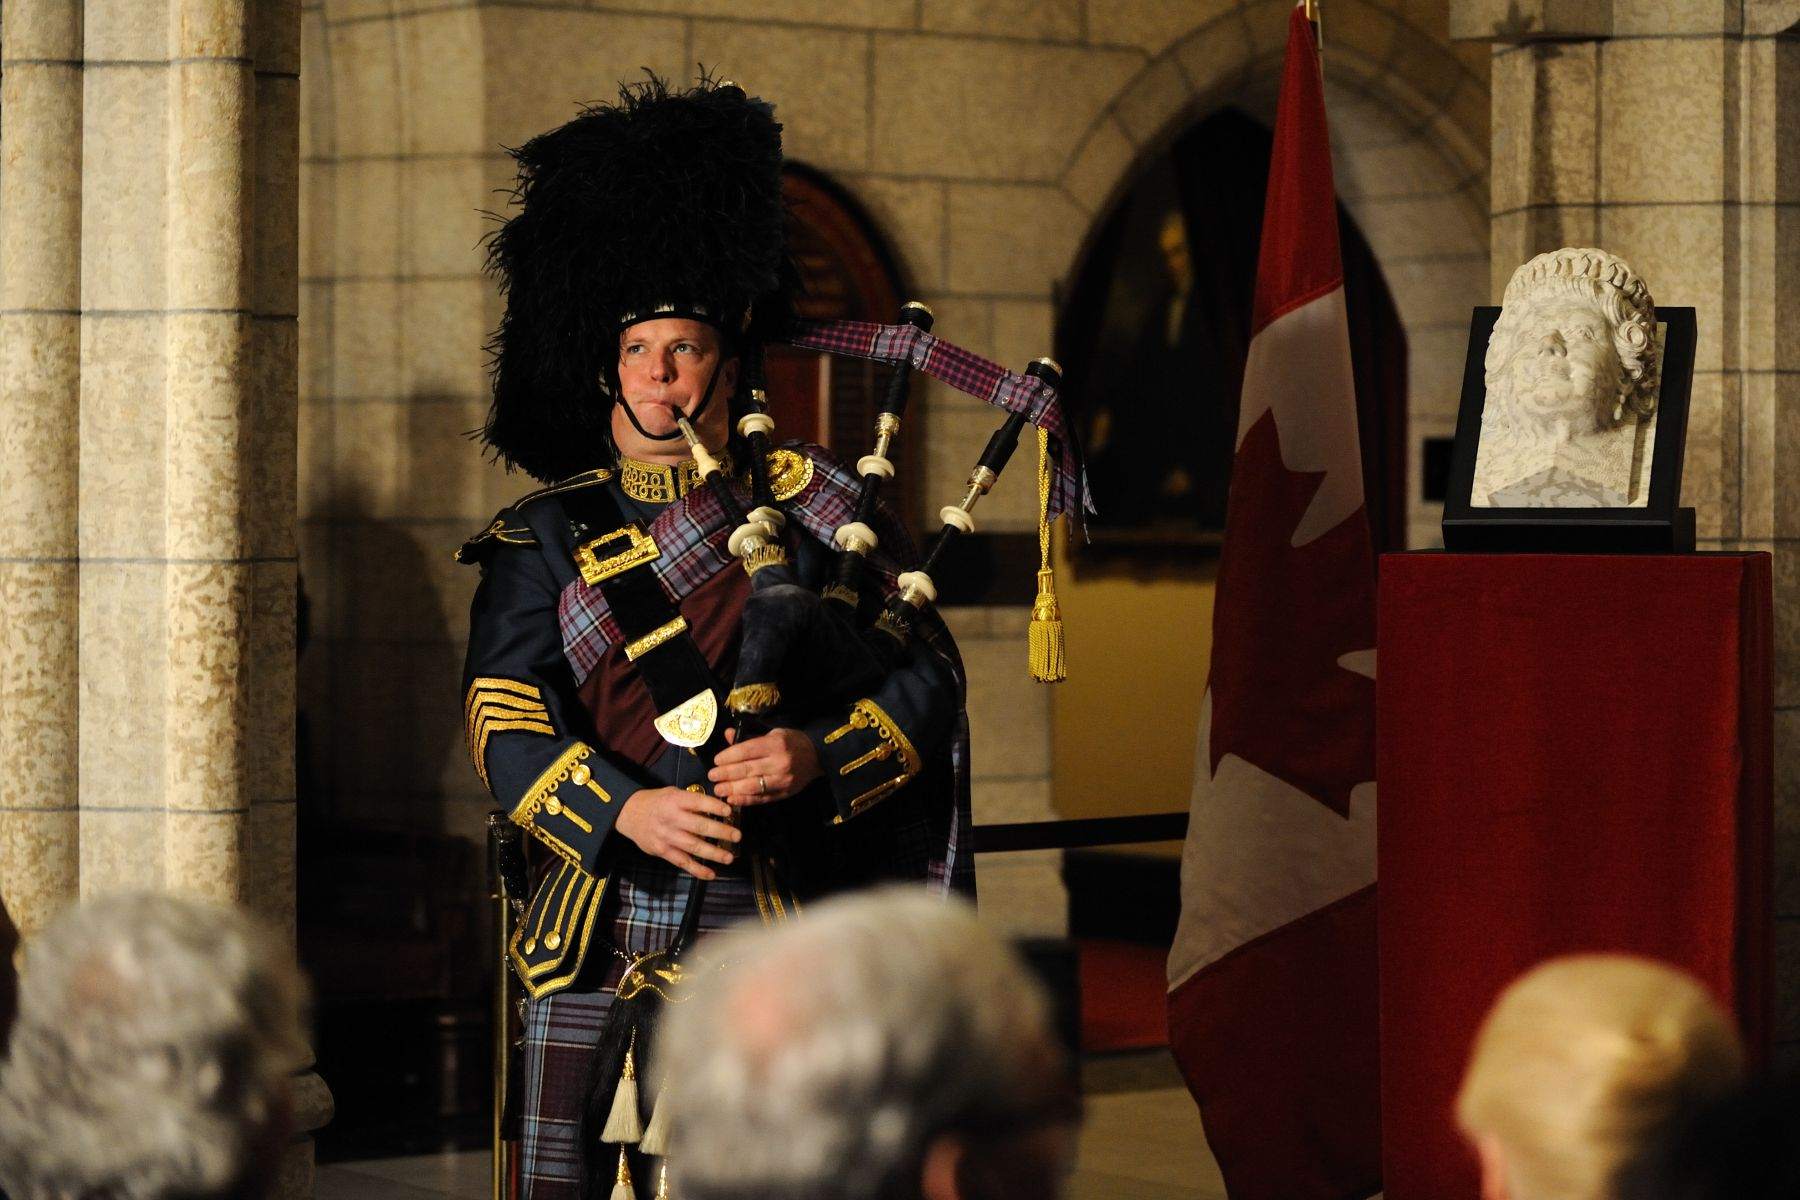 The Maple Crown was played by Pipe Major Tom Brown